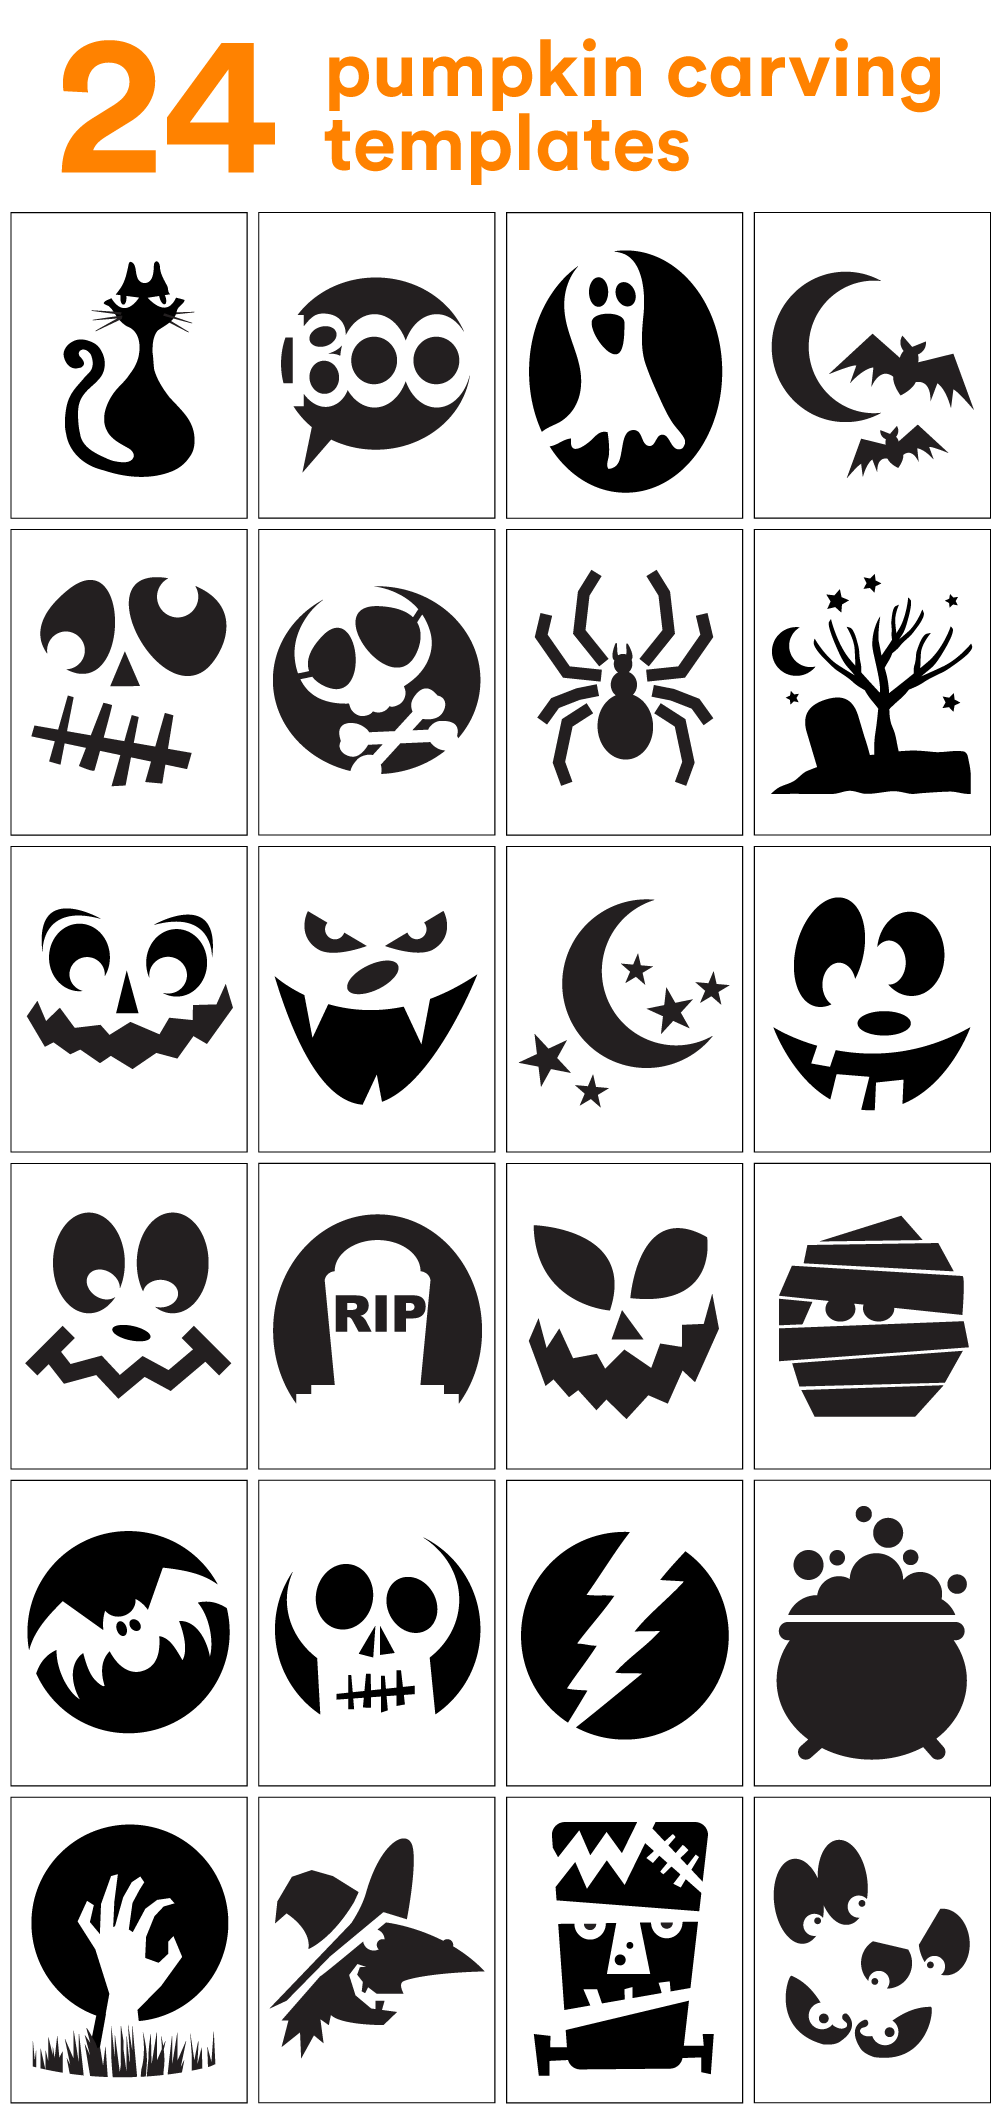 image about Printable Pumpkin Templates titled How in the direction of Carve the Coolest Pumpkin upon the Block (Carving